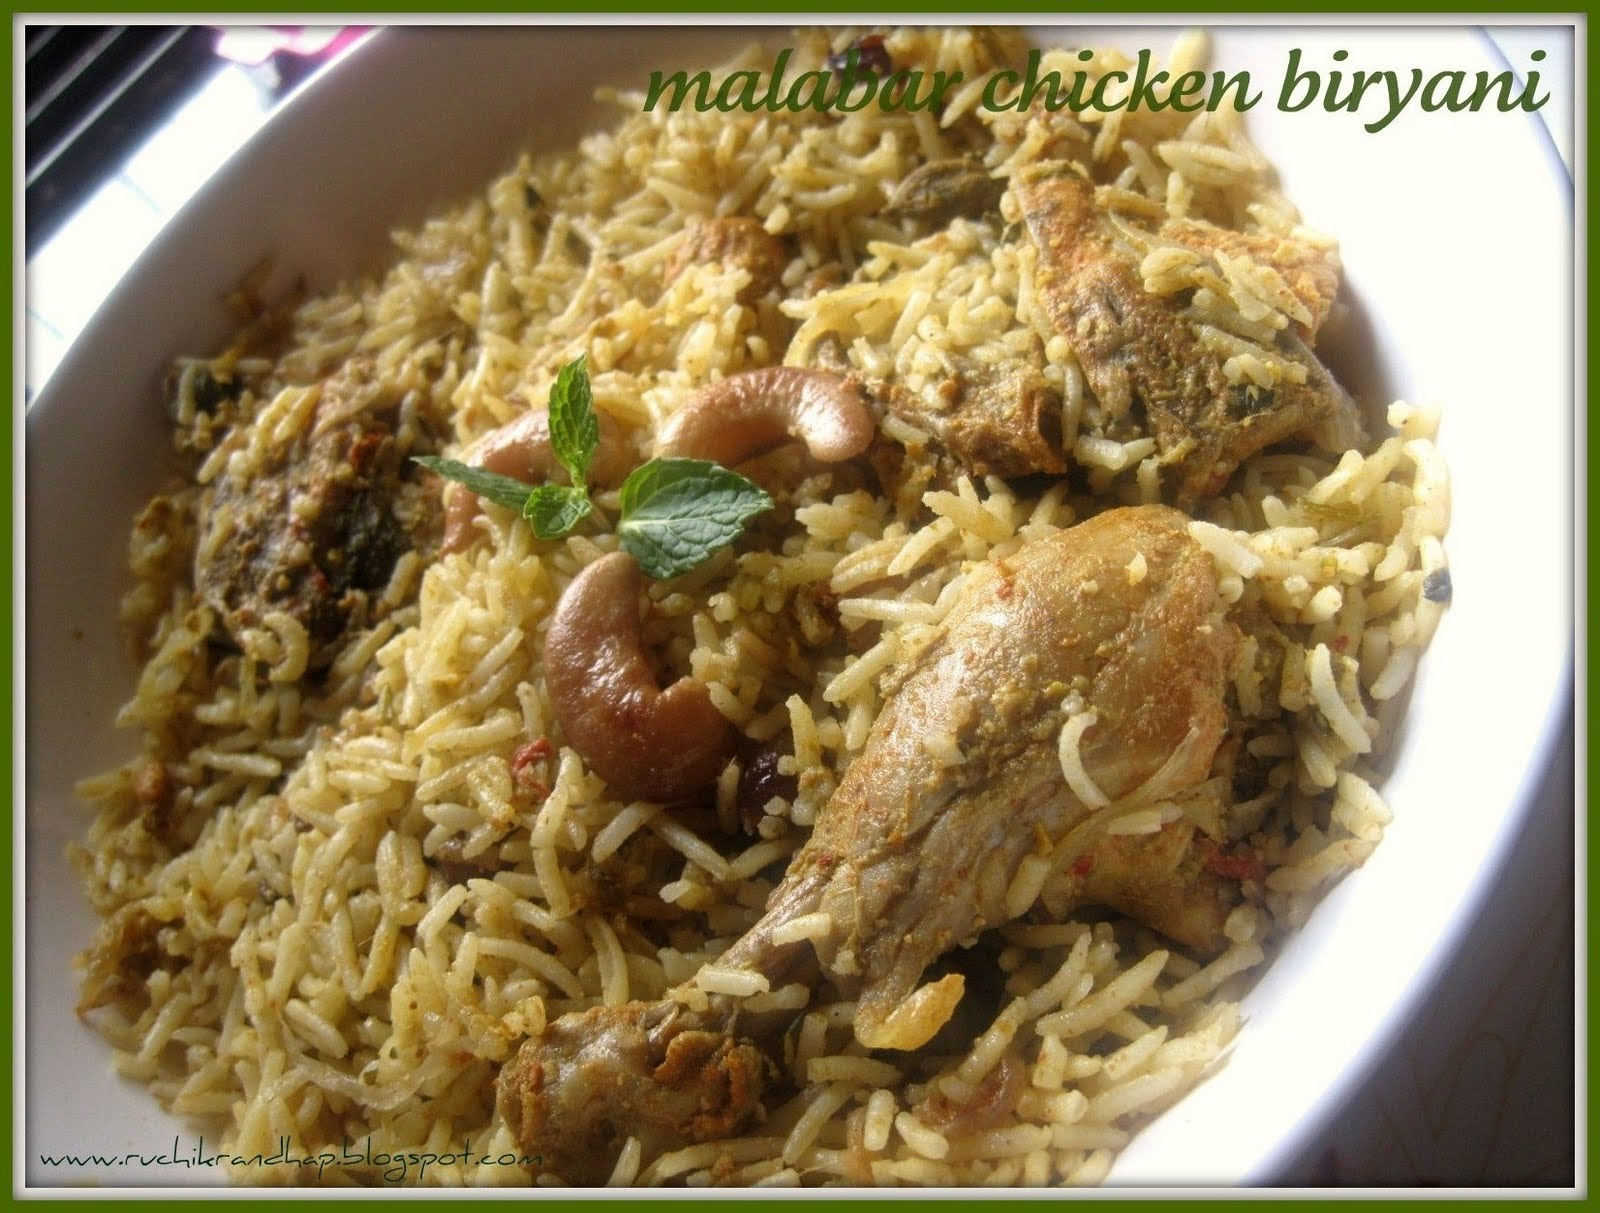 Ruchik Randhap (Delicious Cooking): Malabar Chicken Biryani